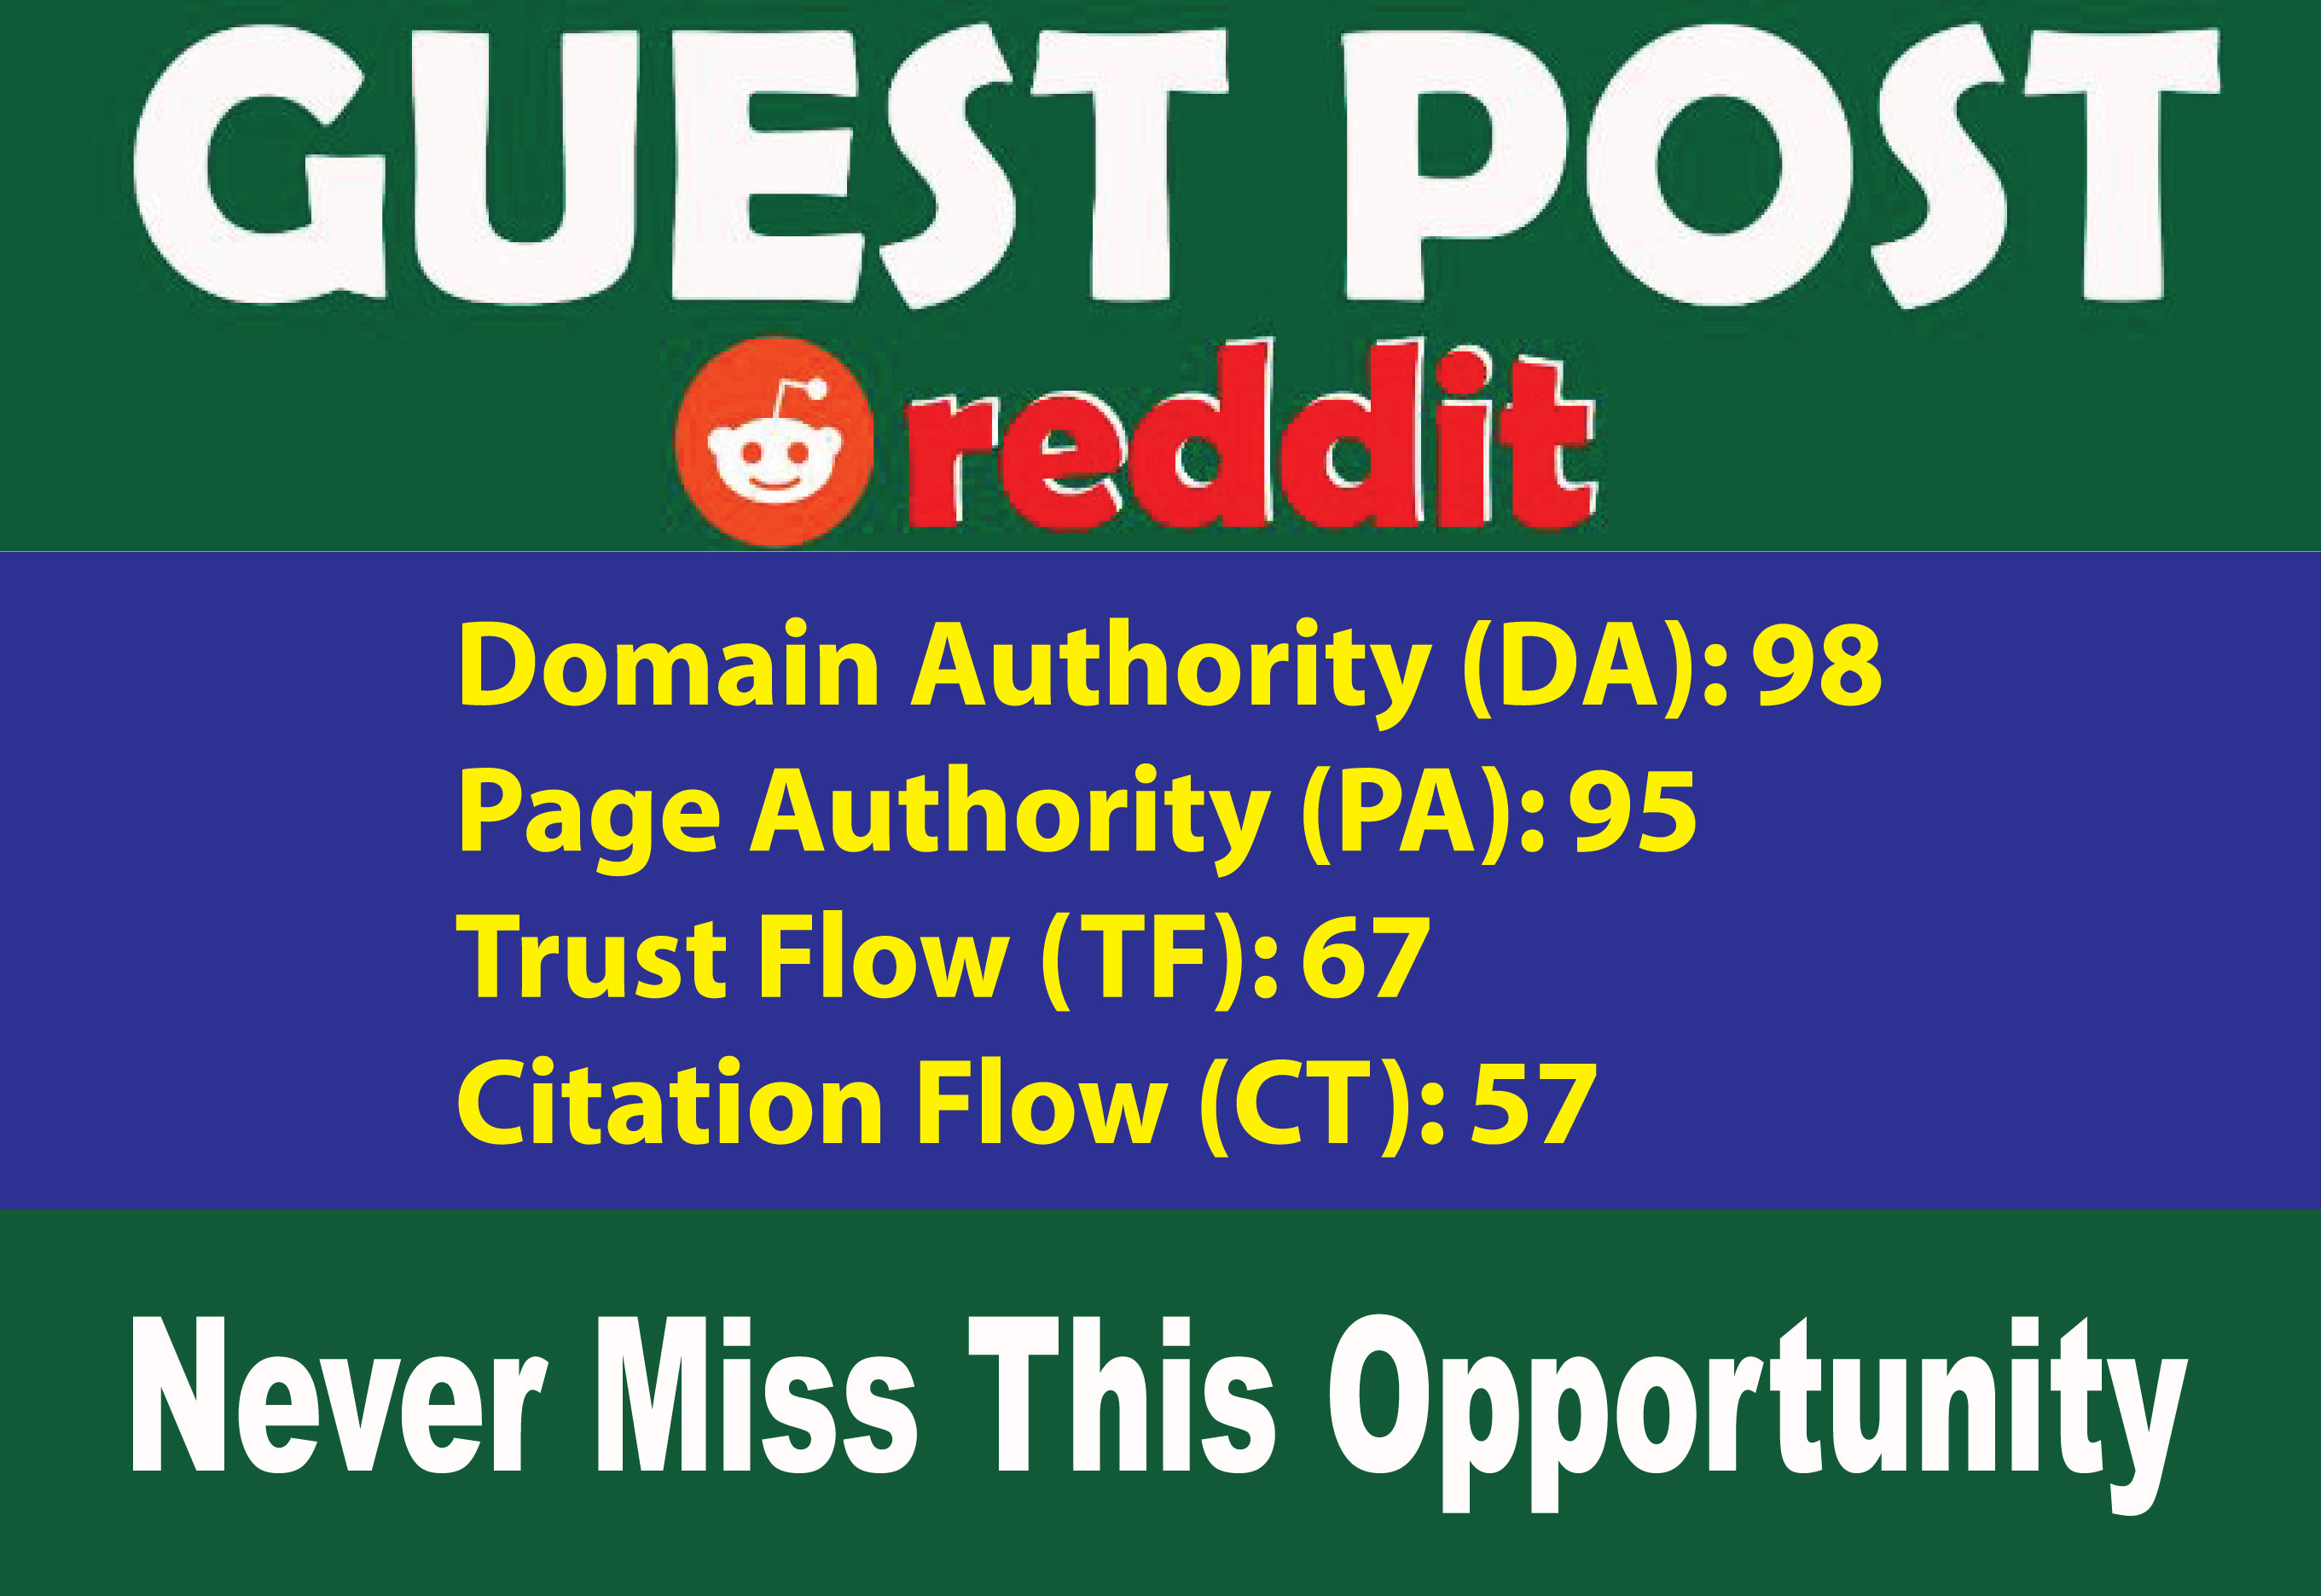 Write And Publish a guest post on reddit reddit. com